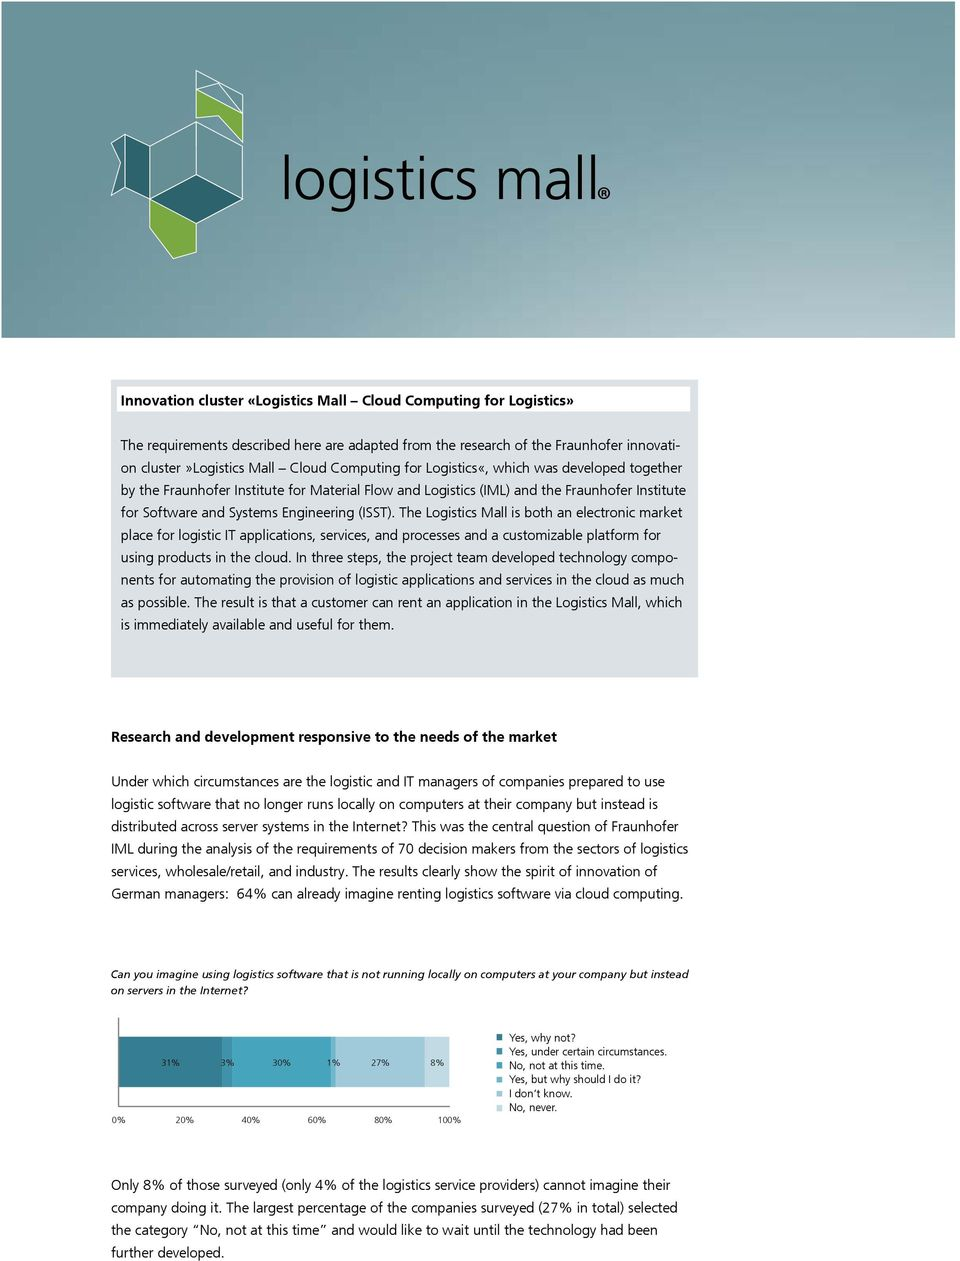 The Logistics Mall is both an electronic market place for logistic IT applications, services, and processes and a customizable platform for using products in the cloud.